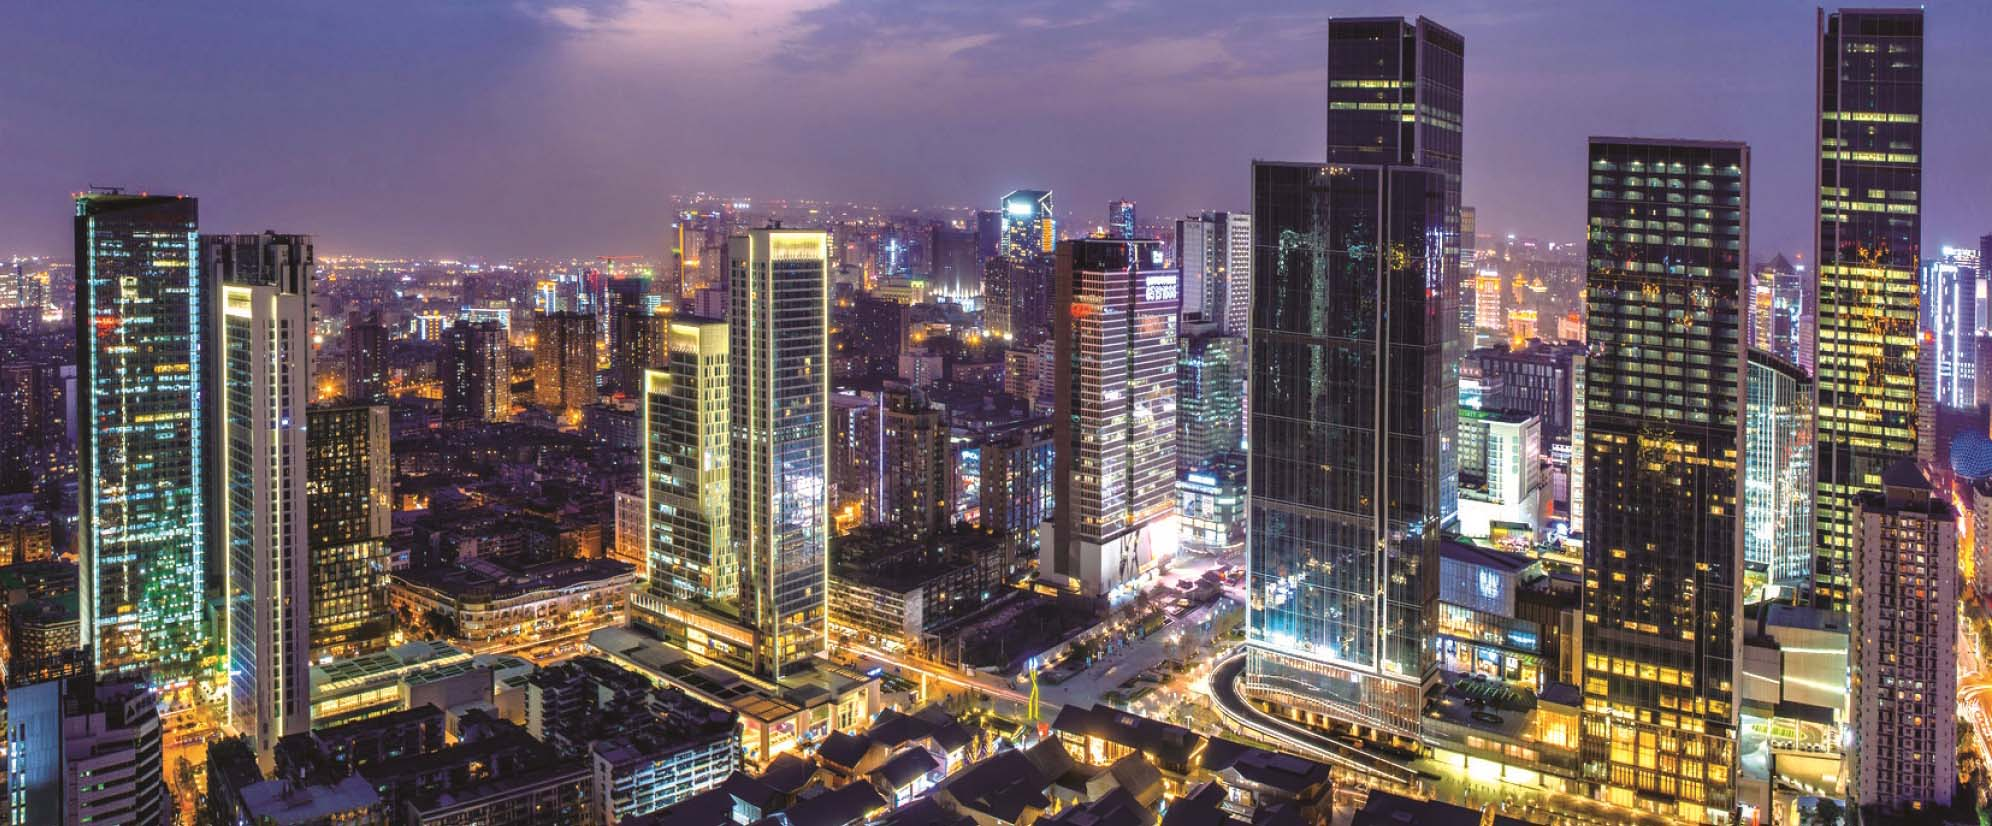 Chengdu-City-View-IFS-1